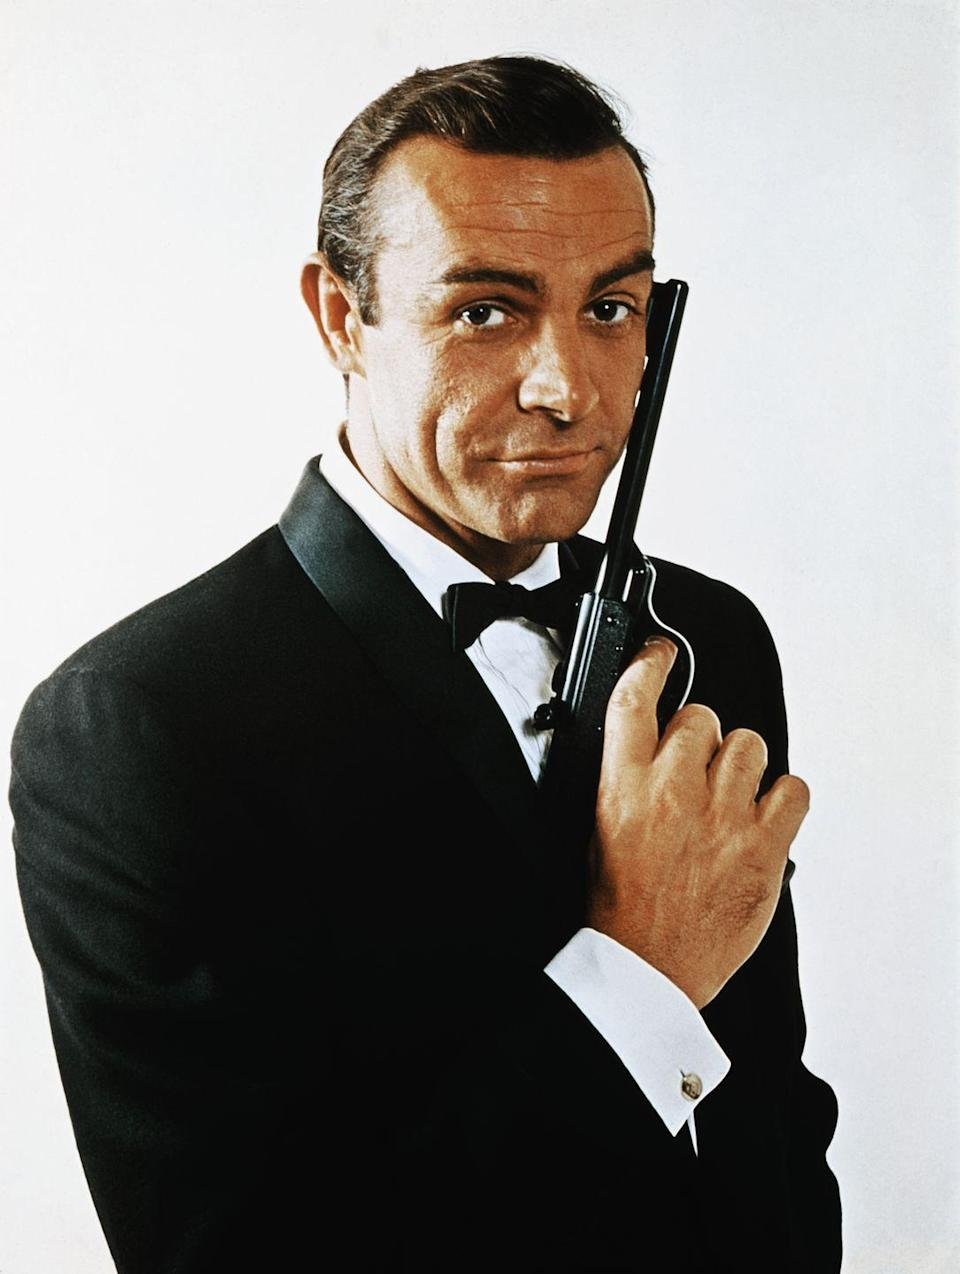 "<p>When the role of James Bond is being cast, Hollywood's youngest and finest line up for the job. But it was a job Sean Connery is known to have grown tired of and, by the end, despised. In a 1965 <em><a href=""https://time.com/4008500/sean-connery-birthday-85/"" rel=""nofollow noopener"" target=""_blank"" data-ylk=""slk:Playboy"" class=""link rapid-noclick-resp"">Playboy </a></em><a href=""https://time.com/4008500/sean-connery-birthday-85/"" rel=""nofollow noopener"" target=""_blank"" data-ylk=""slk:interview"" class=""link rapid-noclick-resp"">interview</a>, the actor shared that he was ""fed up to here with the whole Bond bit.""</p>"